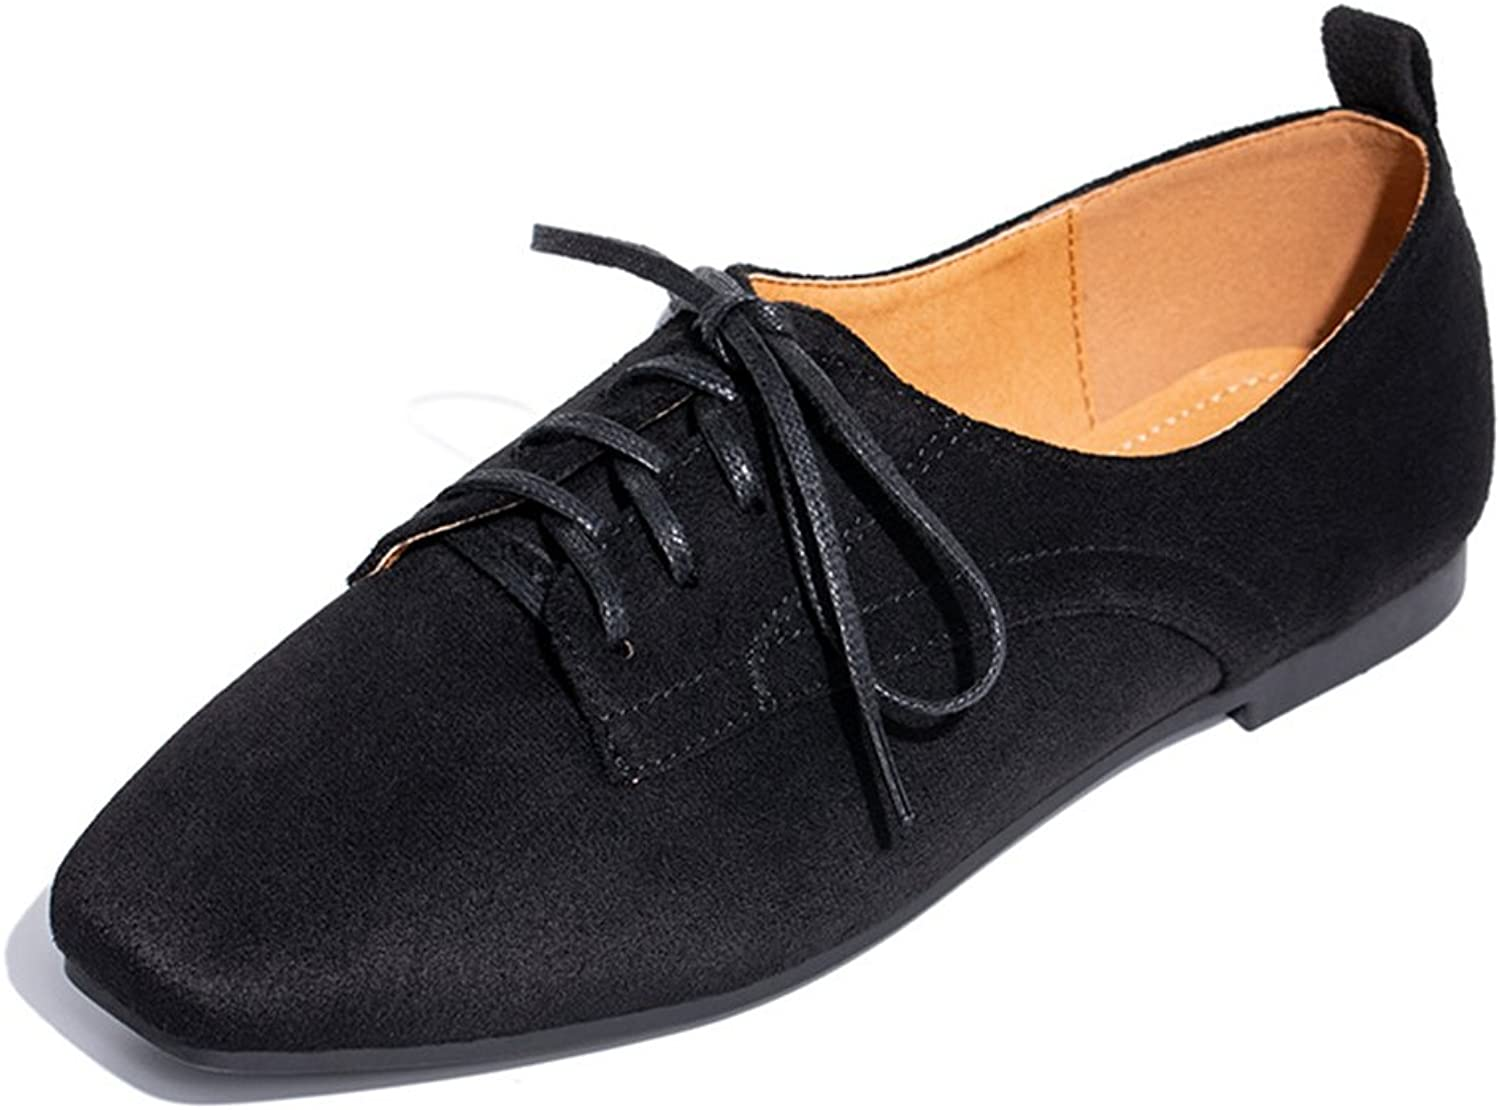 Btrada Women's Suede Walking shoes Stylish Summer Autumn No-Heel Flats Square Head Lace up Loafers